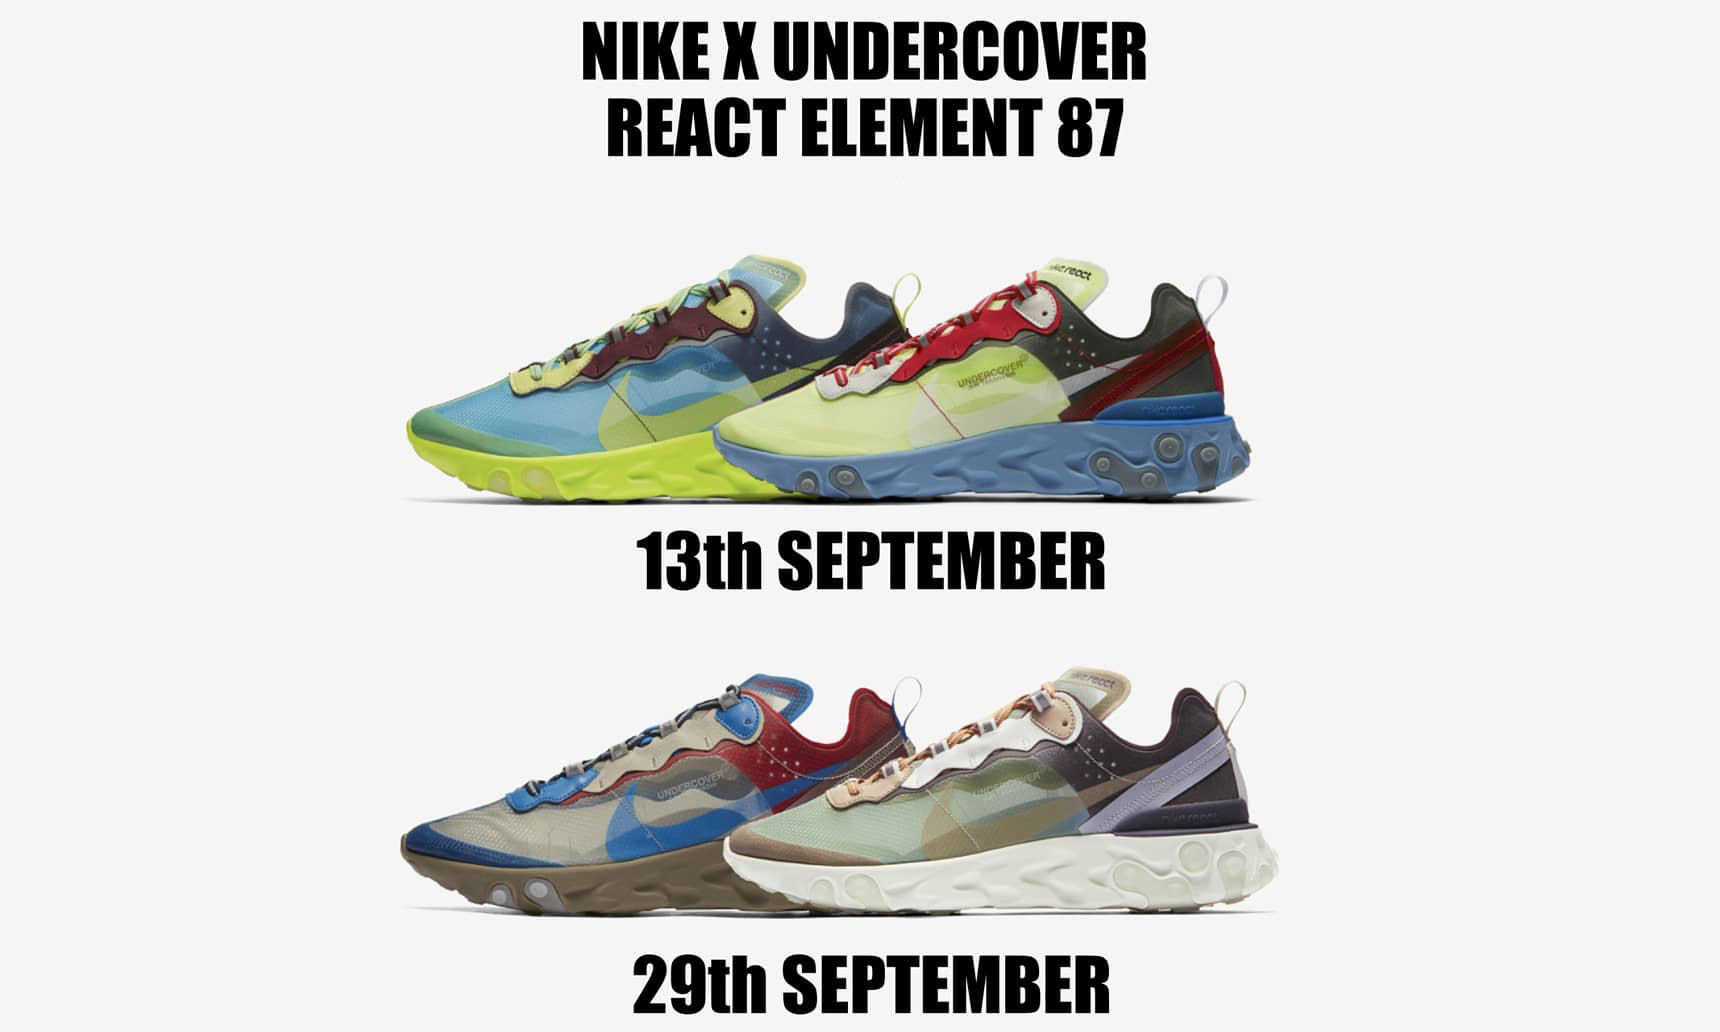 UNDERCOVER x Nike React Element 87 将分为两波发售